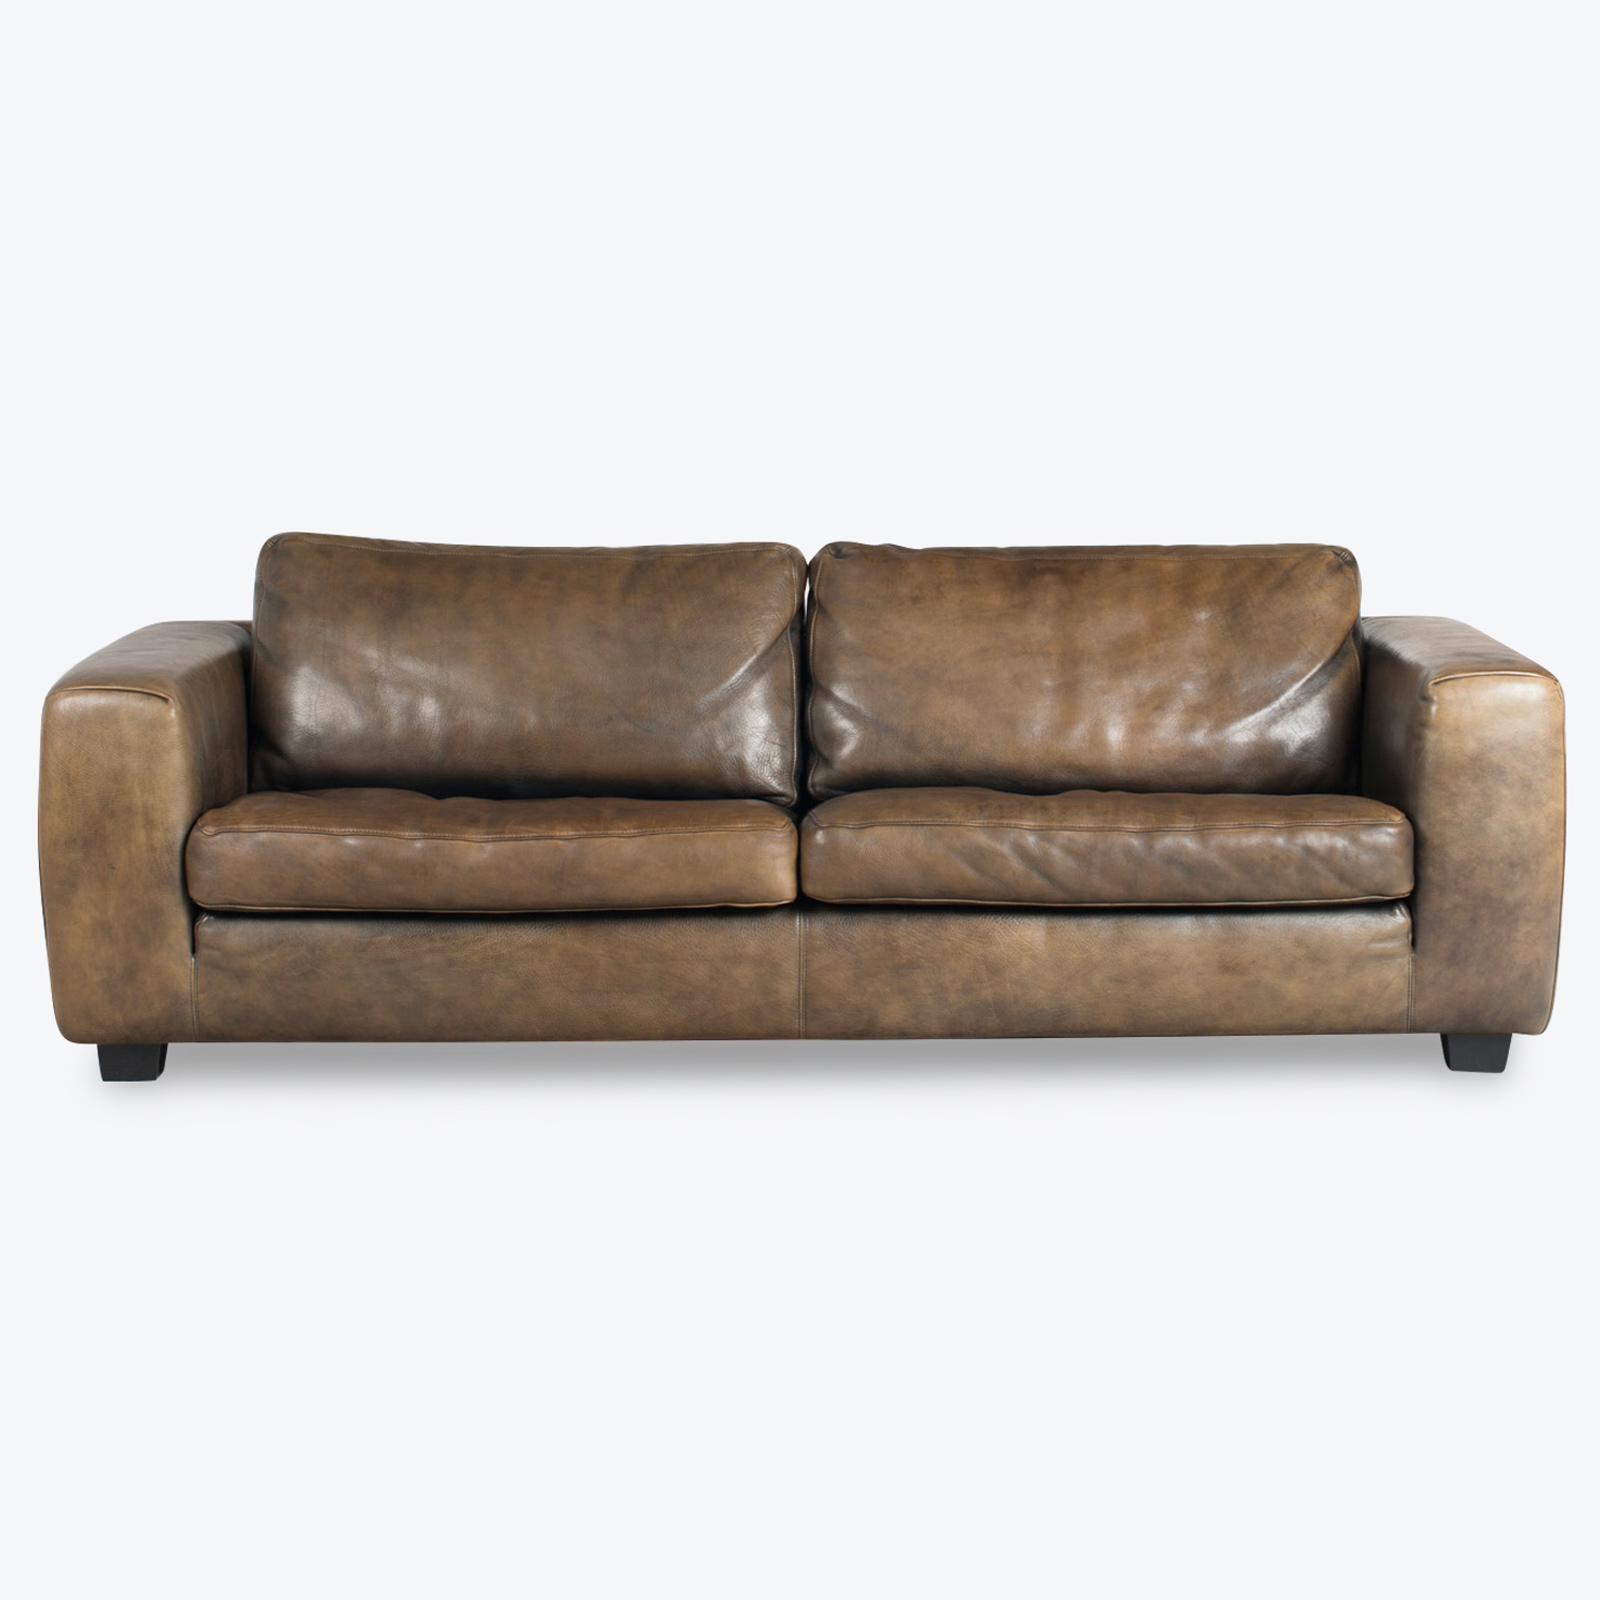 2 Seat Sofa By Molinari In Forest Leather 1980s Netherlands 01